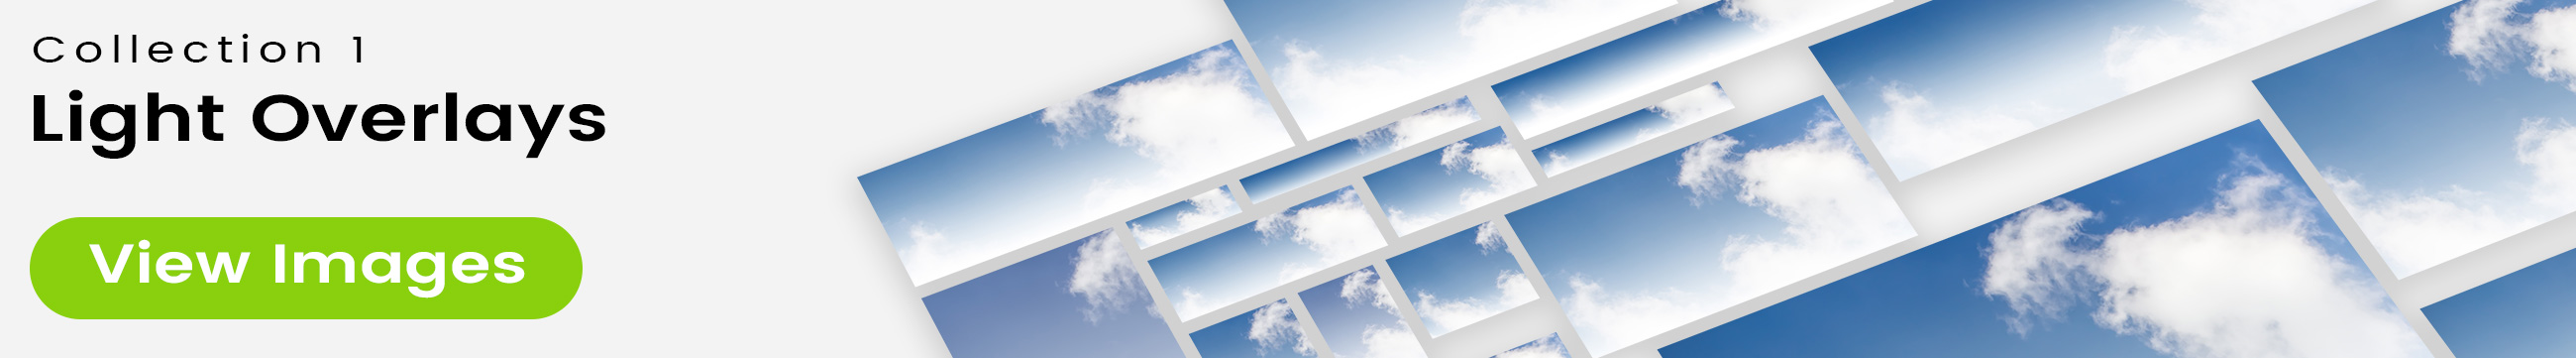 See 25 bonus images included with clouds stock image 9475. Collection 1 of 4 features a light overlay design.